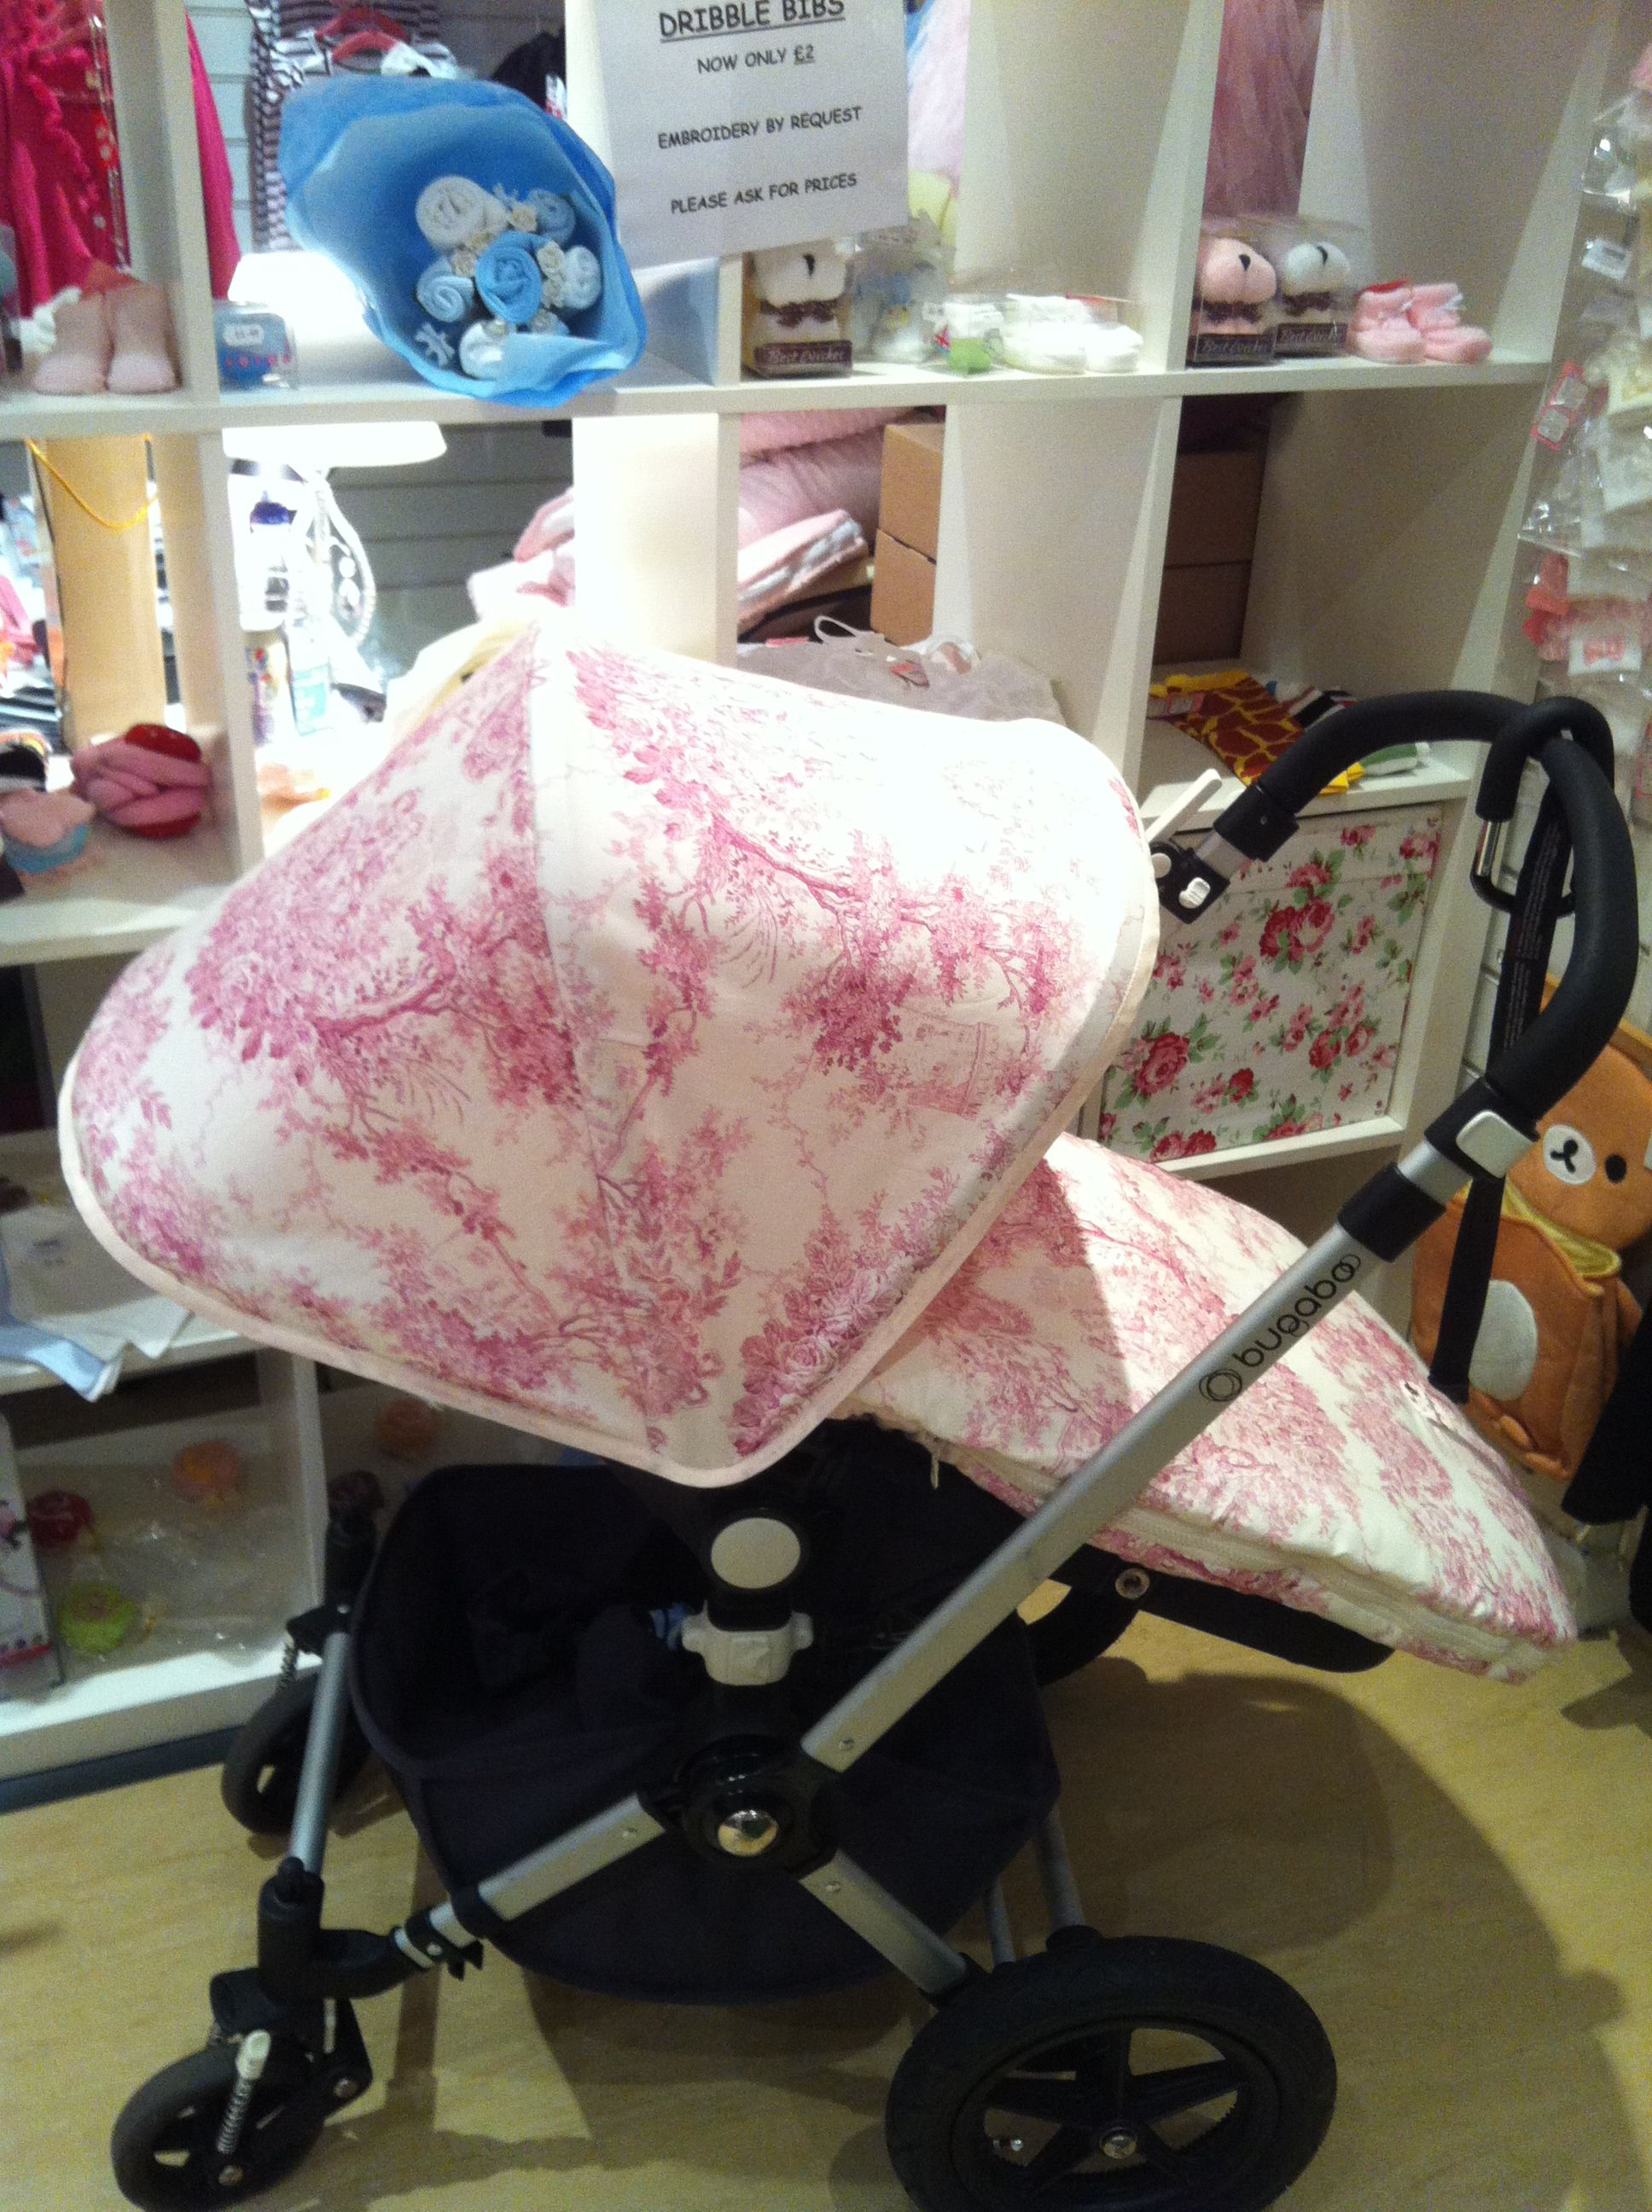 French toile pram set for Bugaboo Cameleon by Gemzdesignz